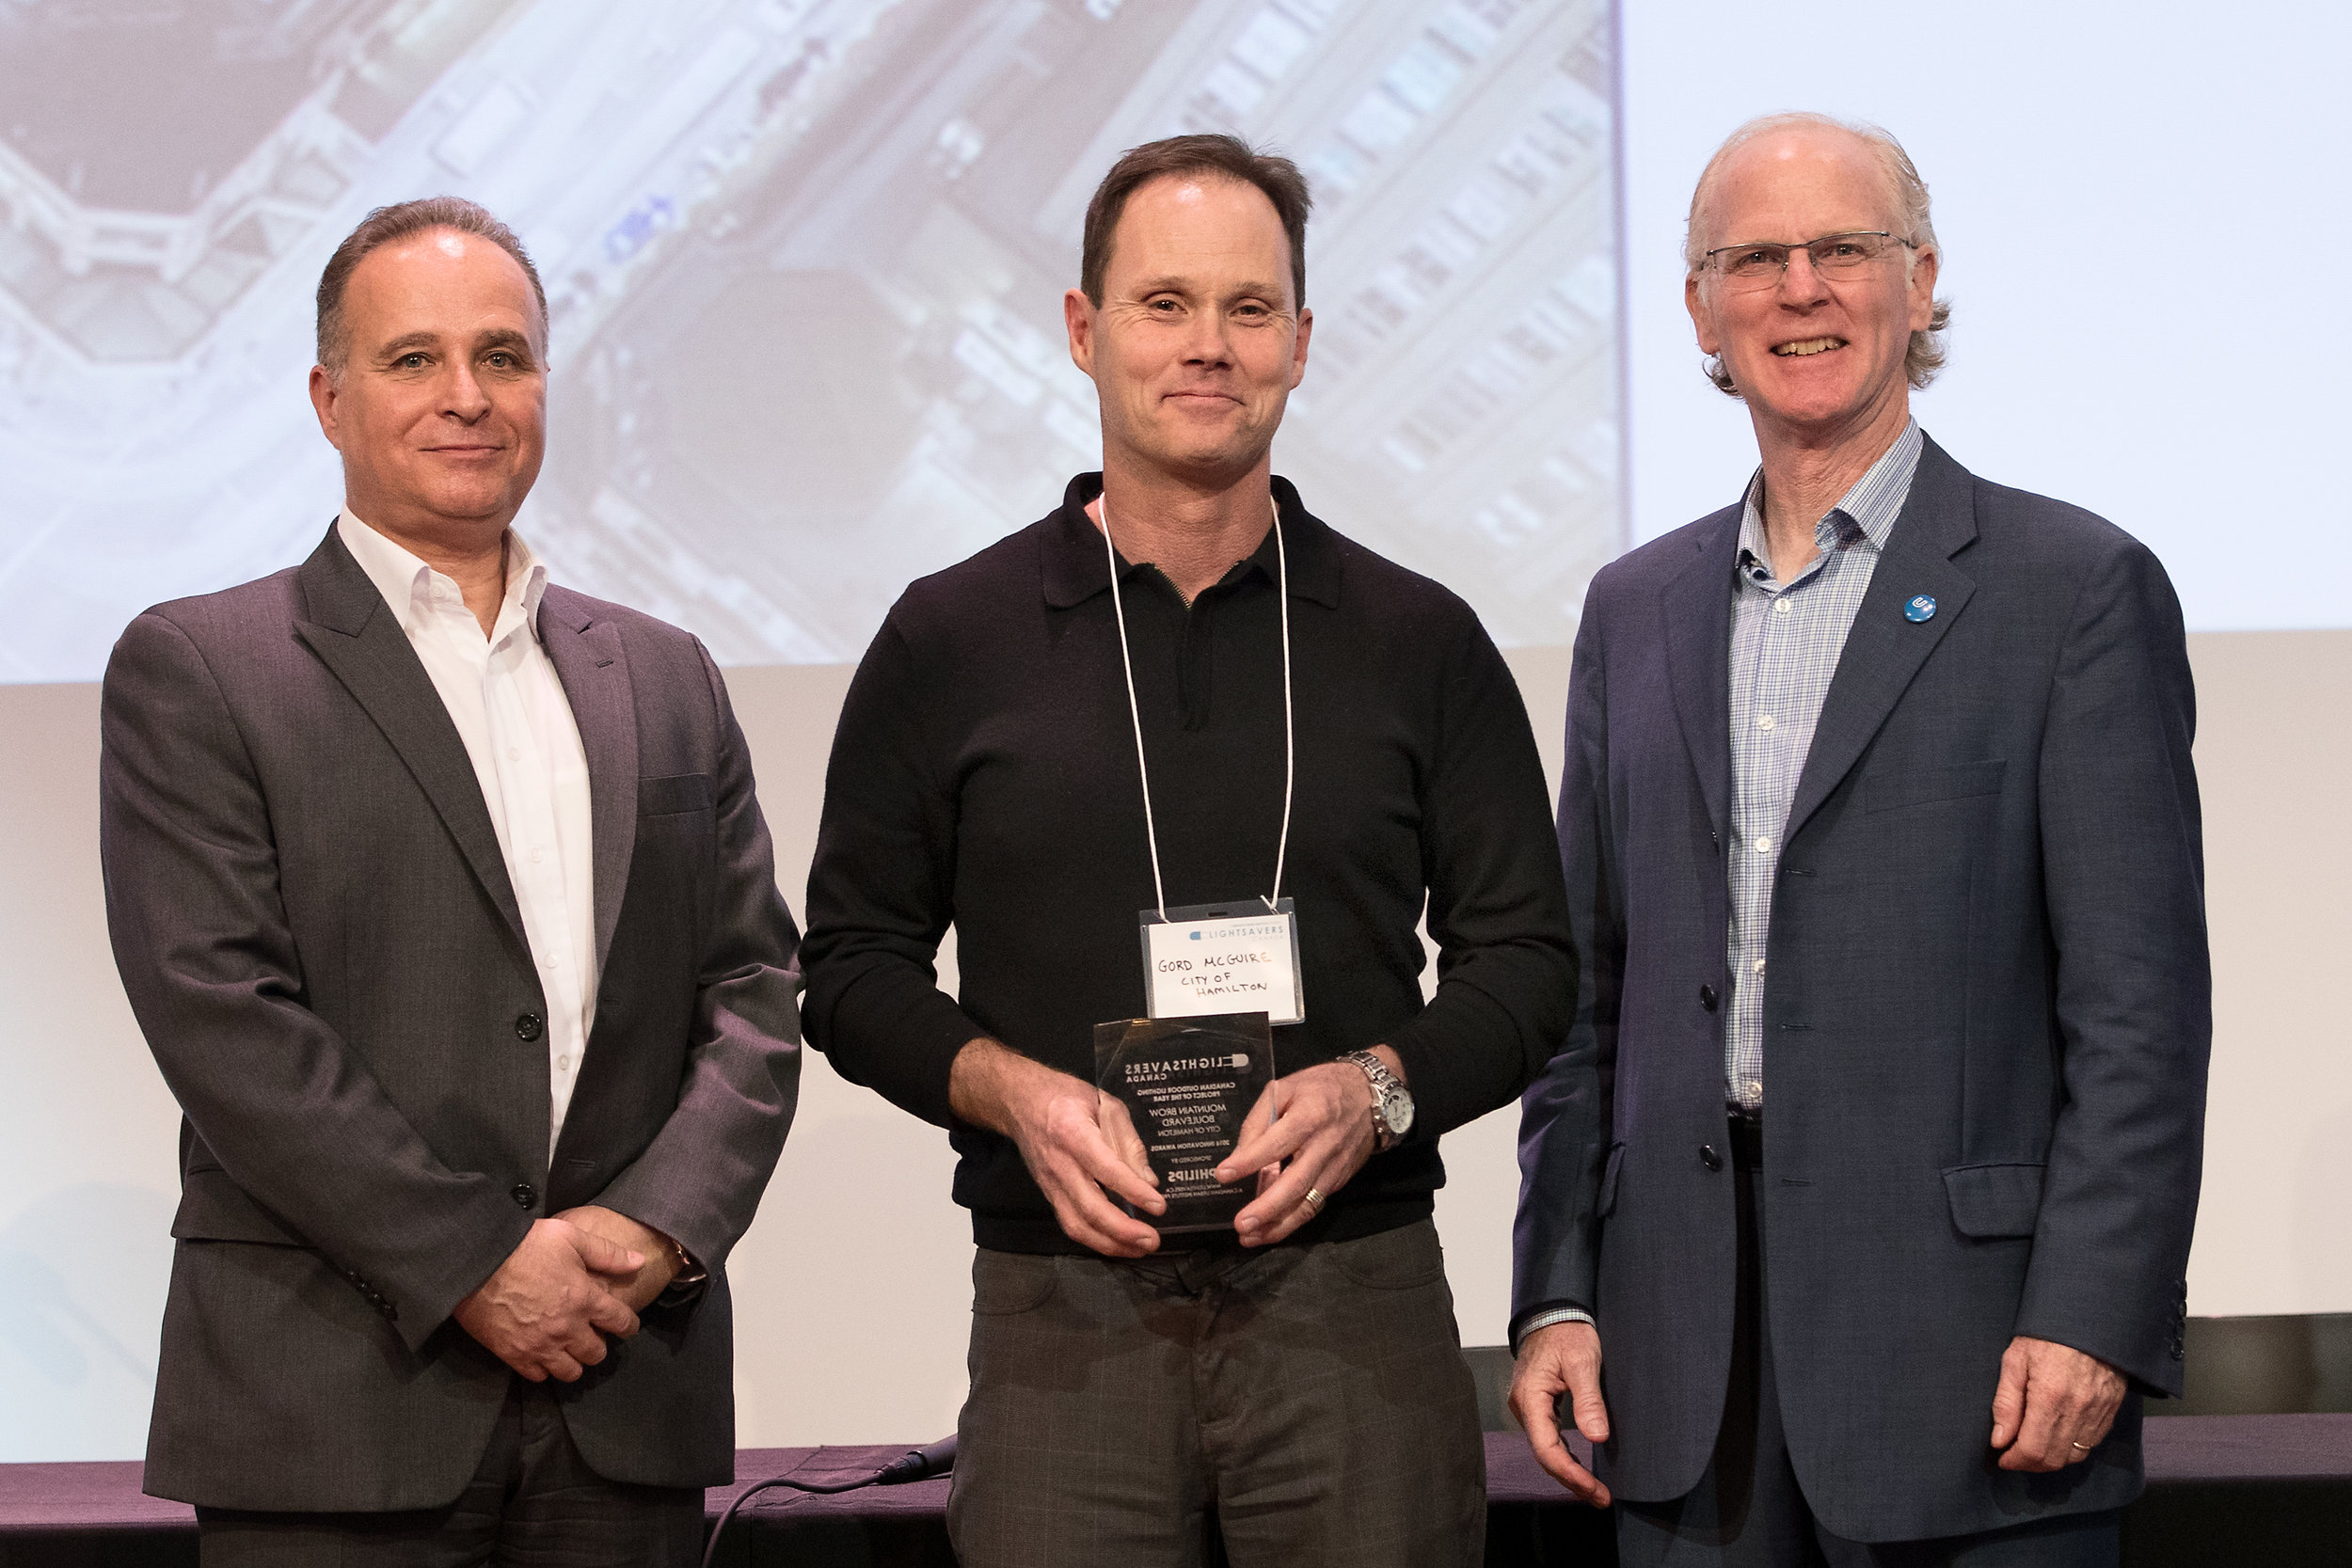 Gord McGuire accepting the award on behalf of the  City of Hamilton  with Peter Halsall of LightSavers and Angelo Miceli of Philips Lighting.